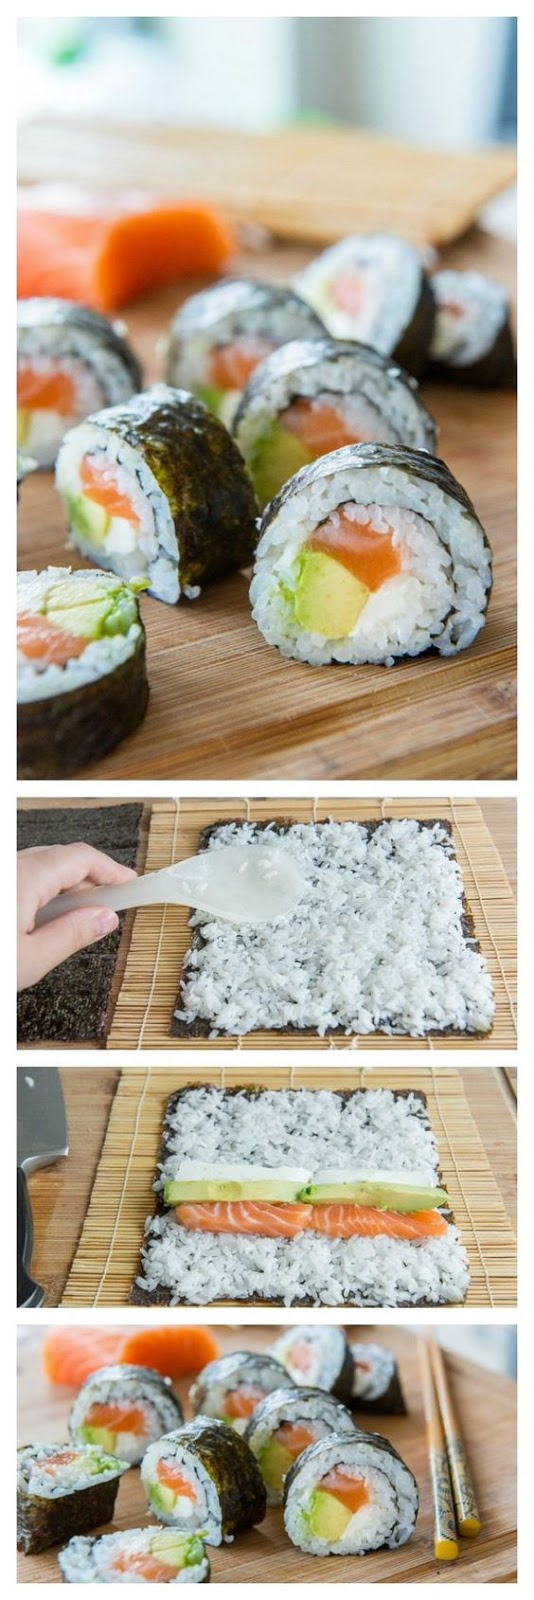 ★★★★☆ 7561 ratings | Homemade Sushi #HEALTHYFOOD #EASYRECIPES #DINNER #LAUCH #DELICIOUS #EASY #HOLIDAYS #RECIPE #Homemade #Sushi